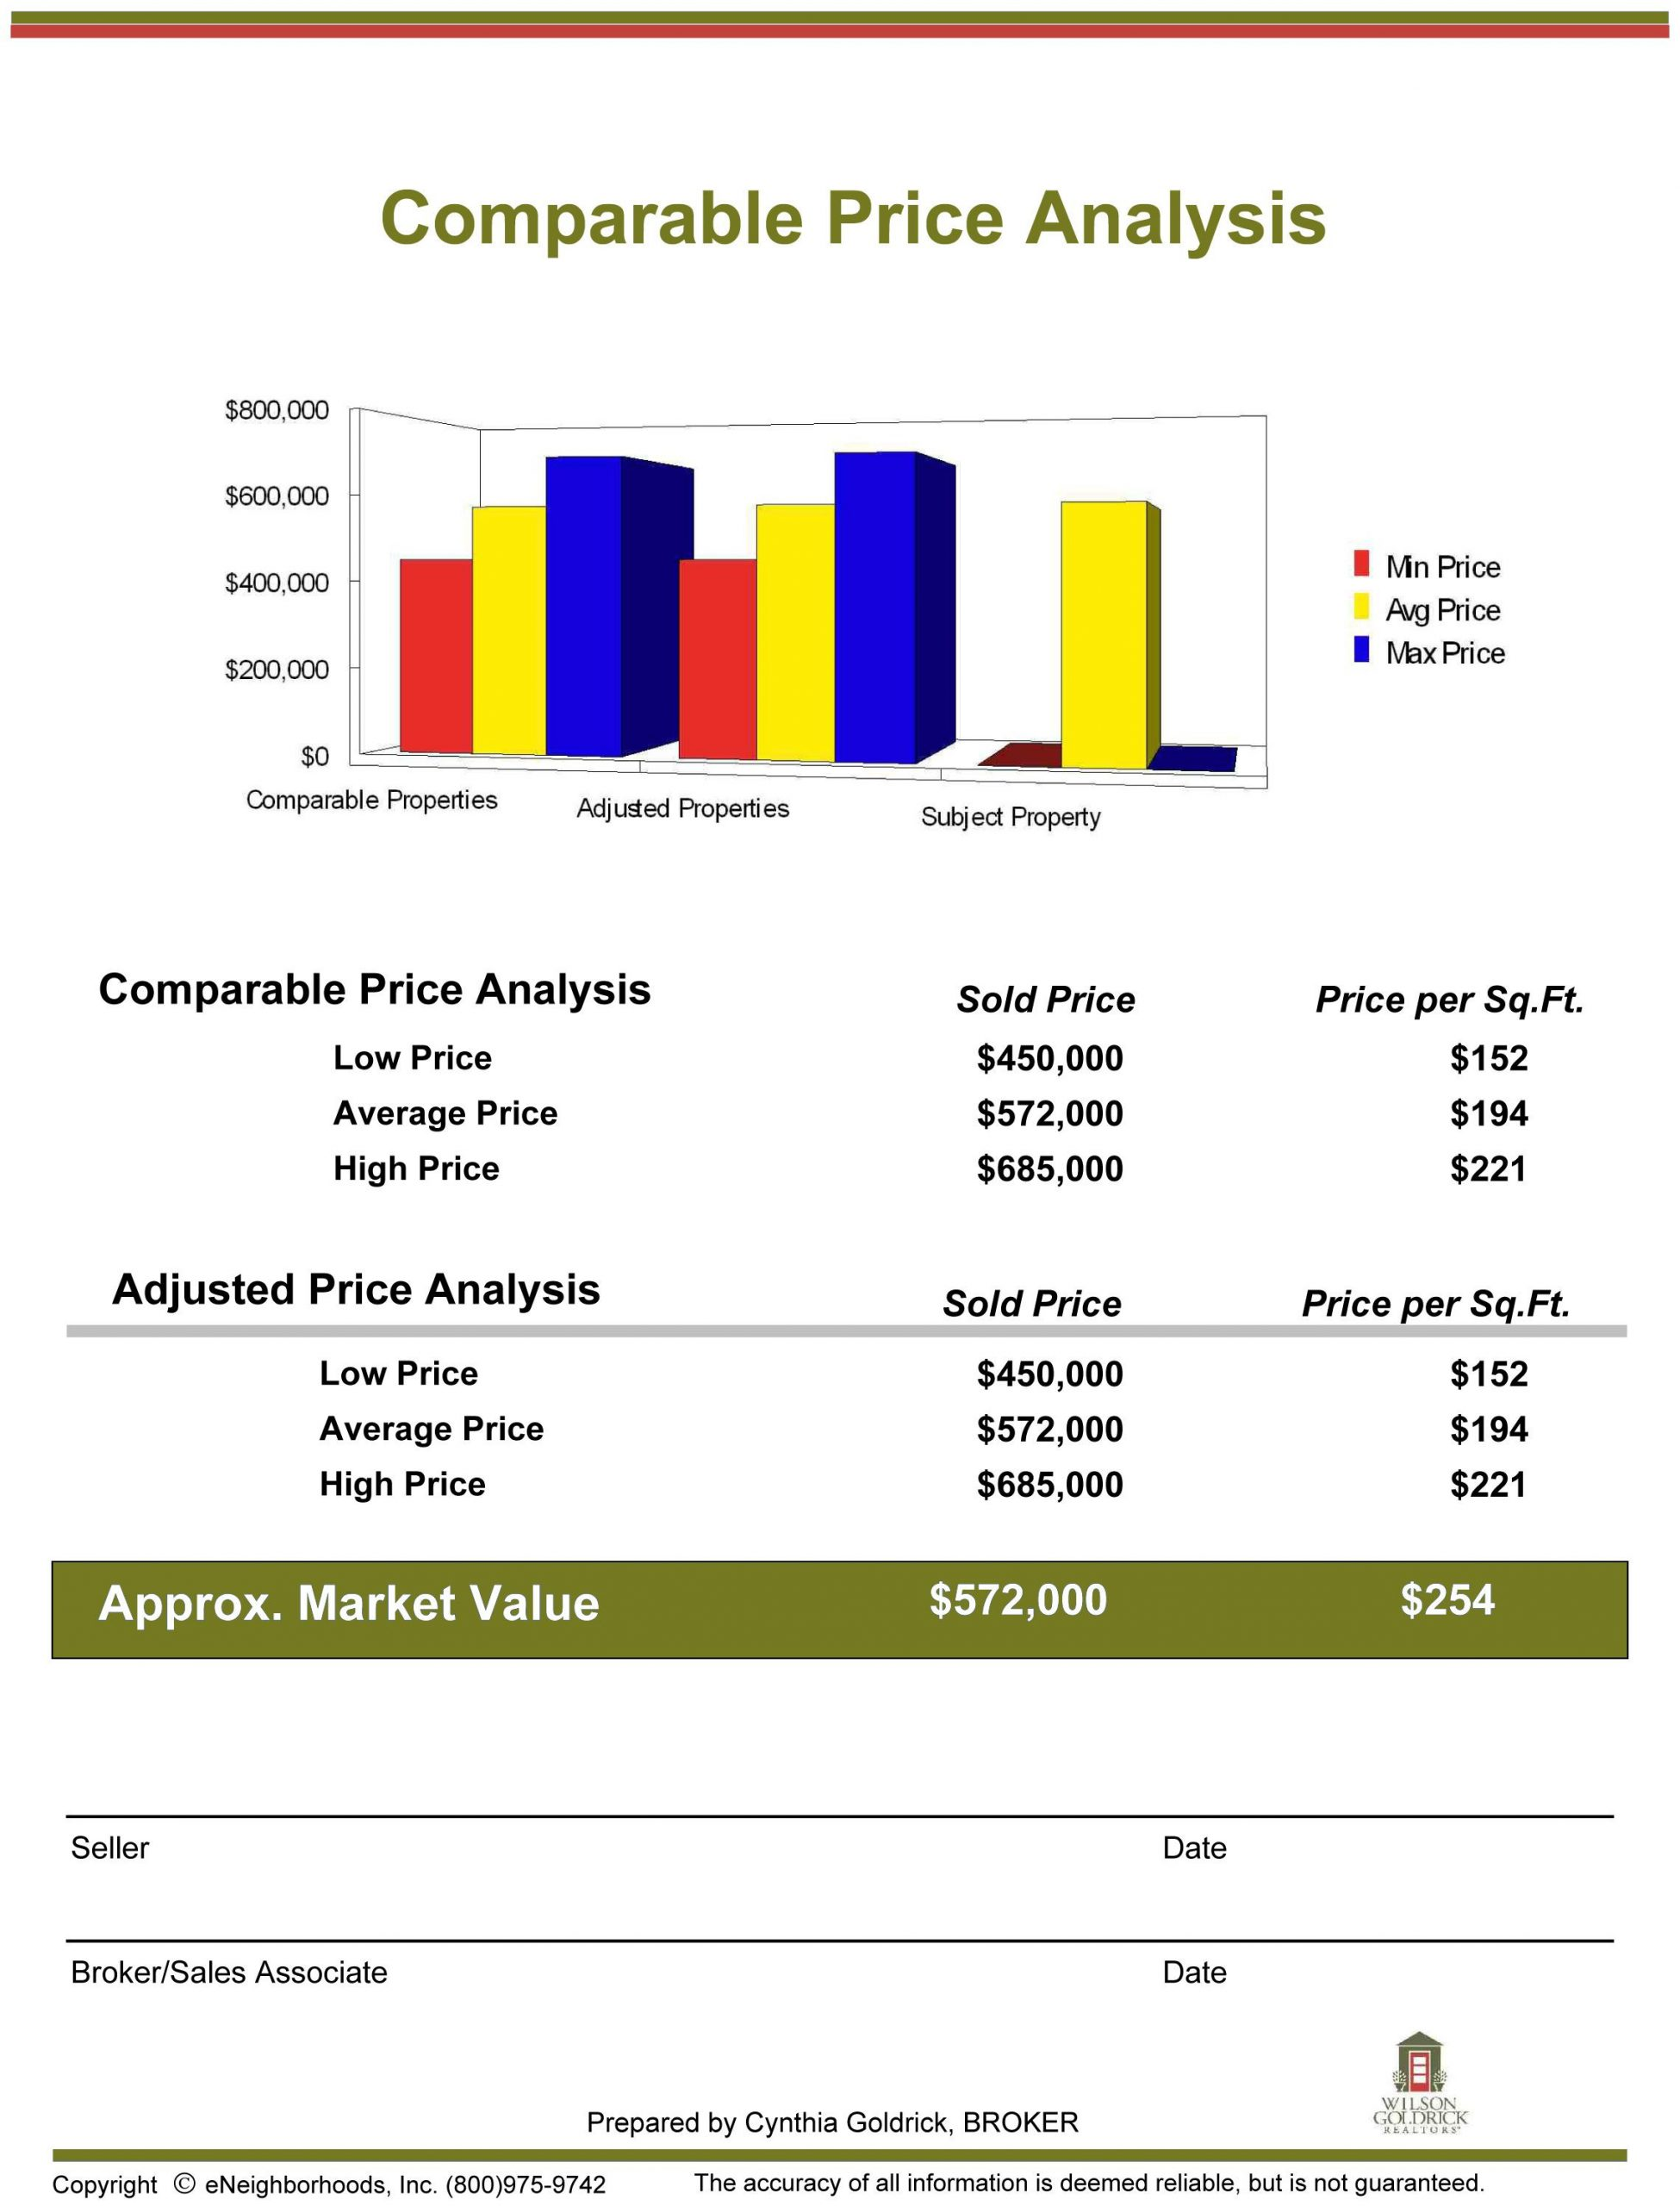 Prepare parative Market Analysis for agents using